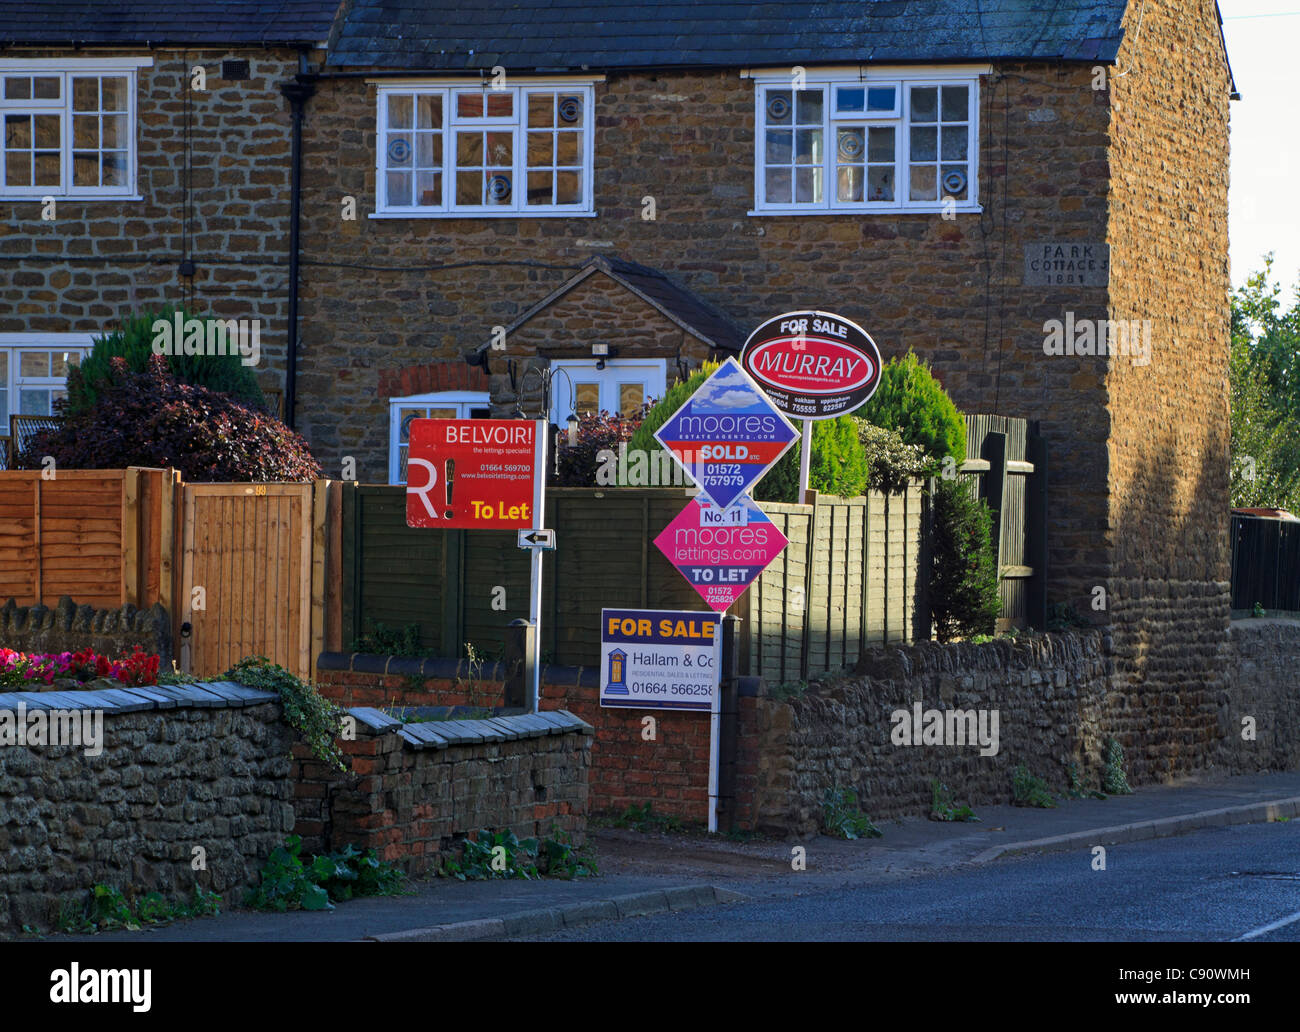 Signs for houses and cottages for sale and to let. - Stock Image